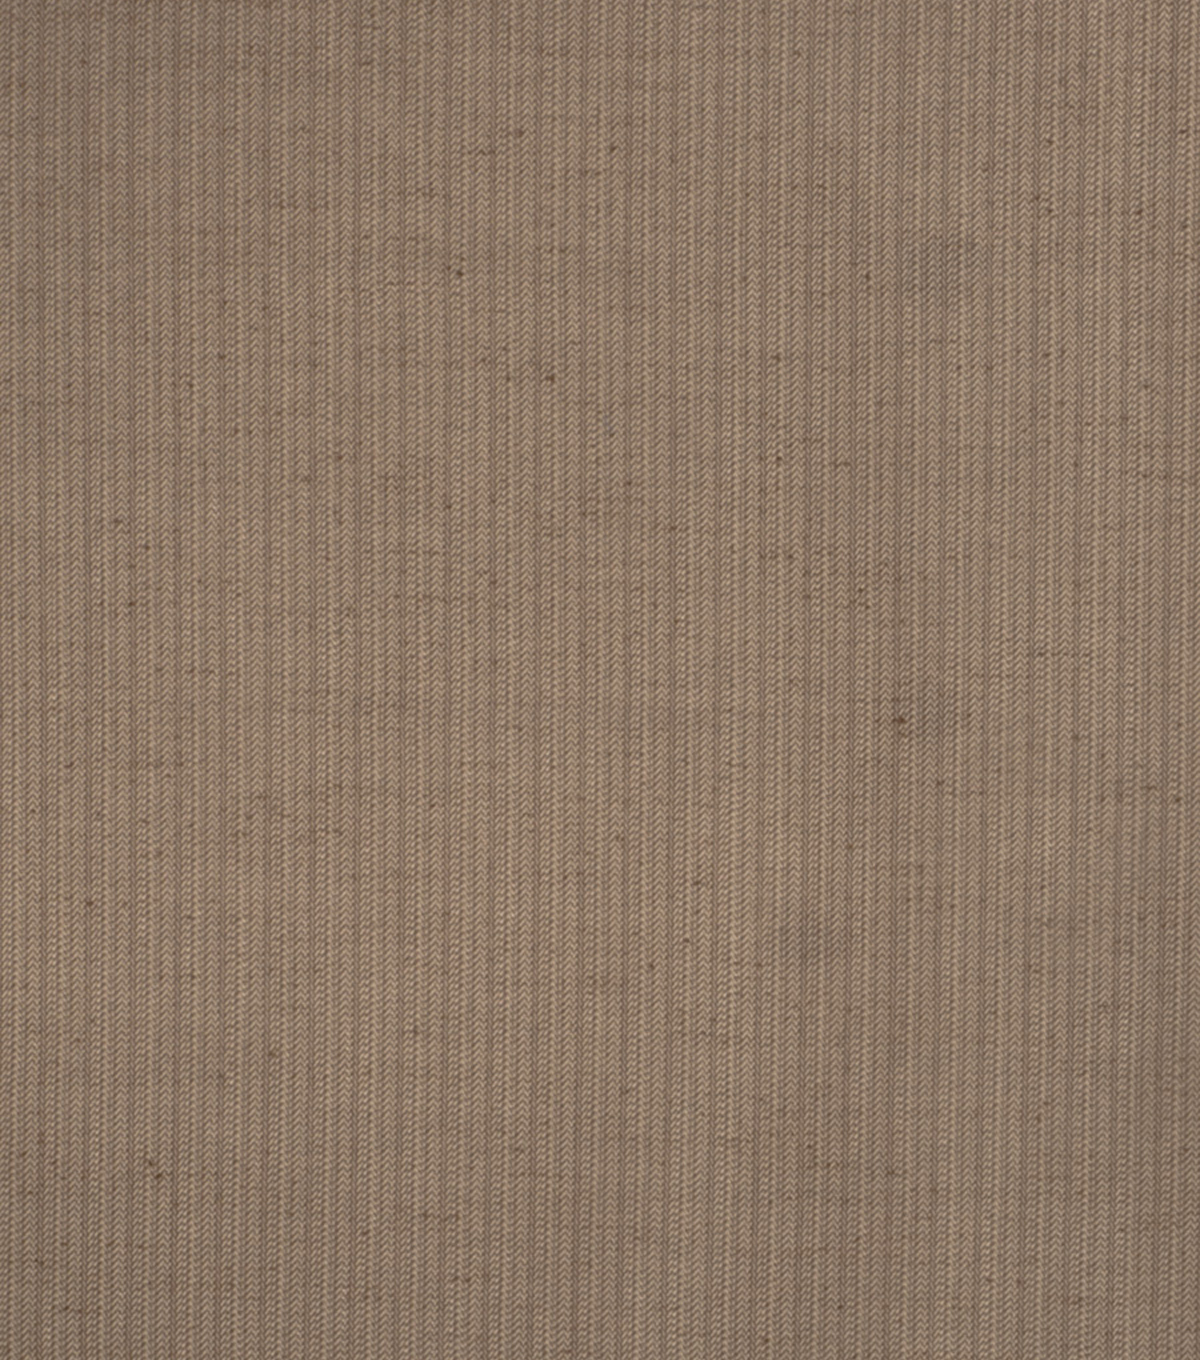 Home Decor 8\u0022x8\u0022 Fabric Swatch-SMC Designs Wilson / Mocha